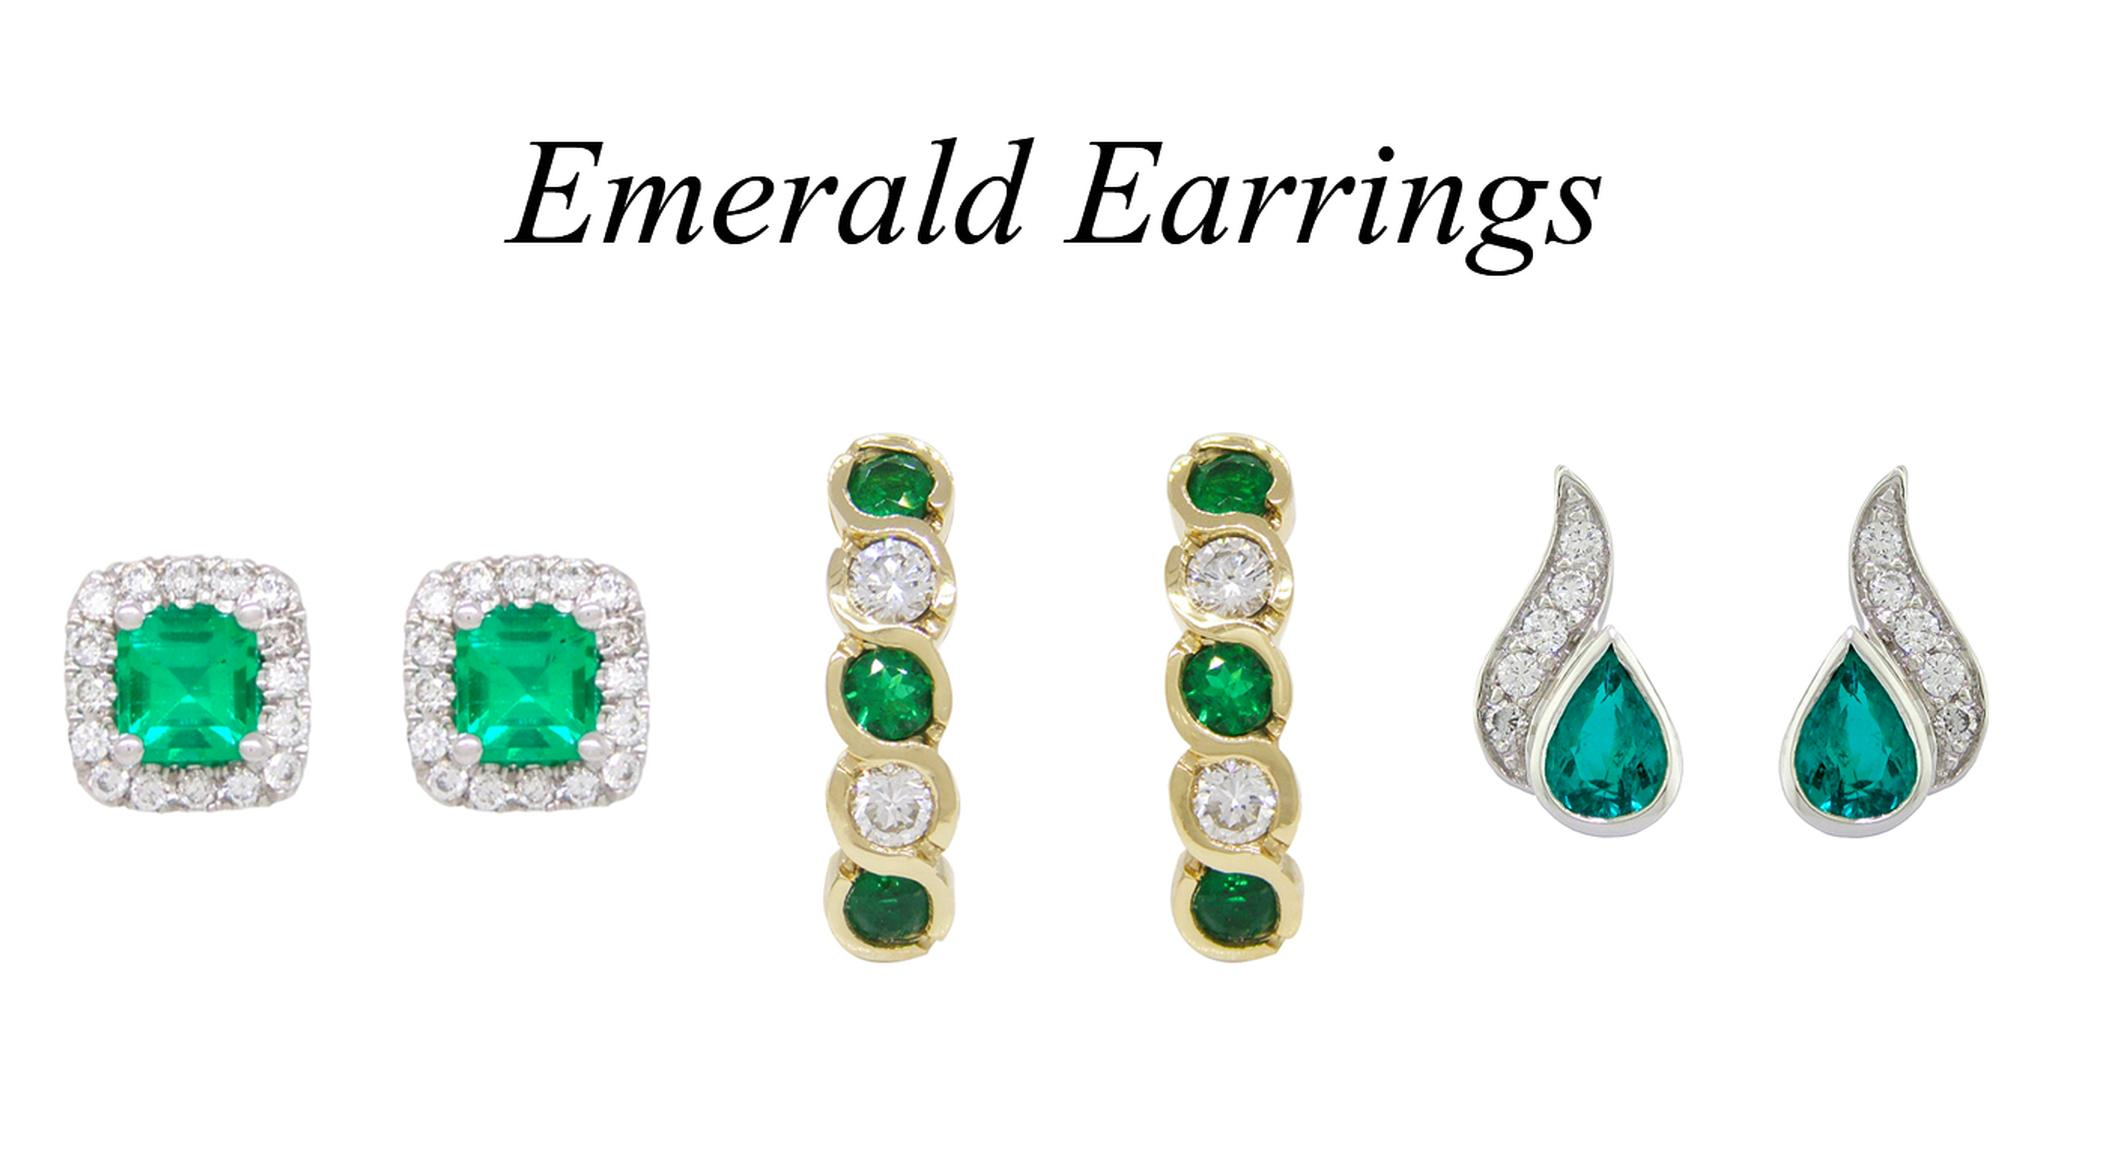 2 Emerald Earrings